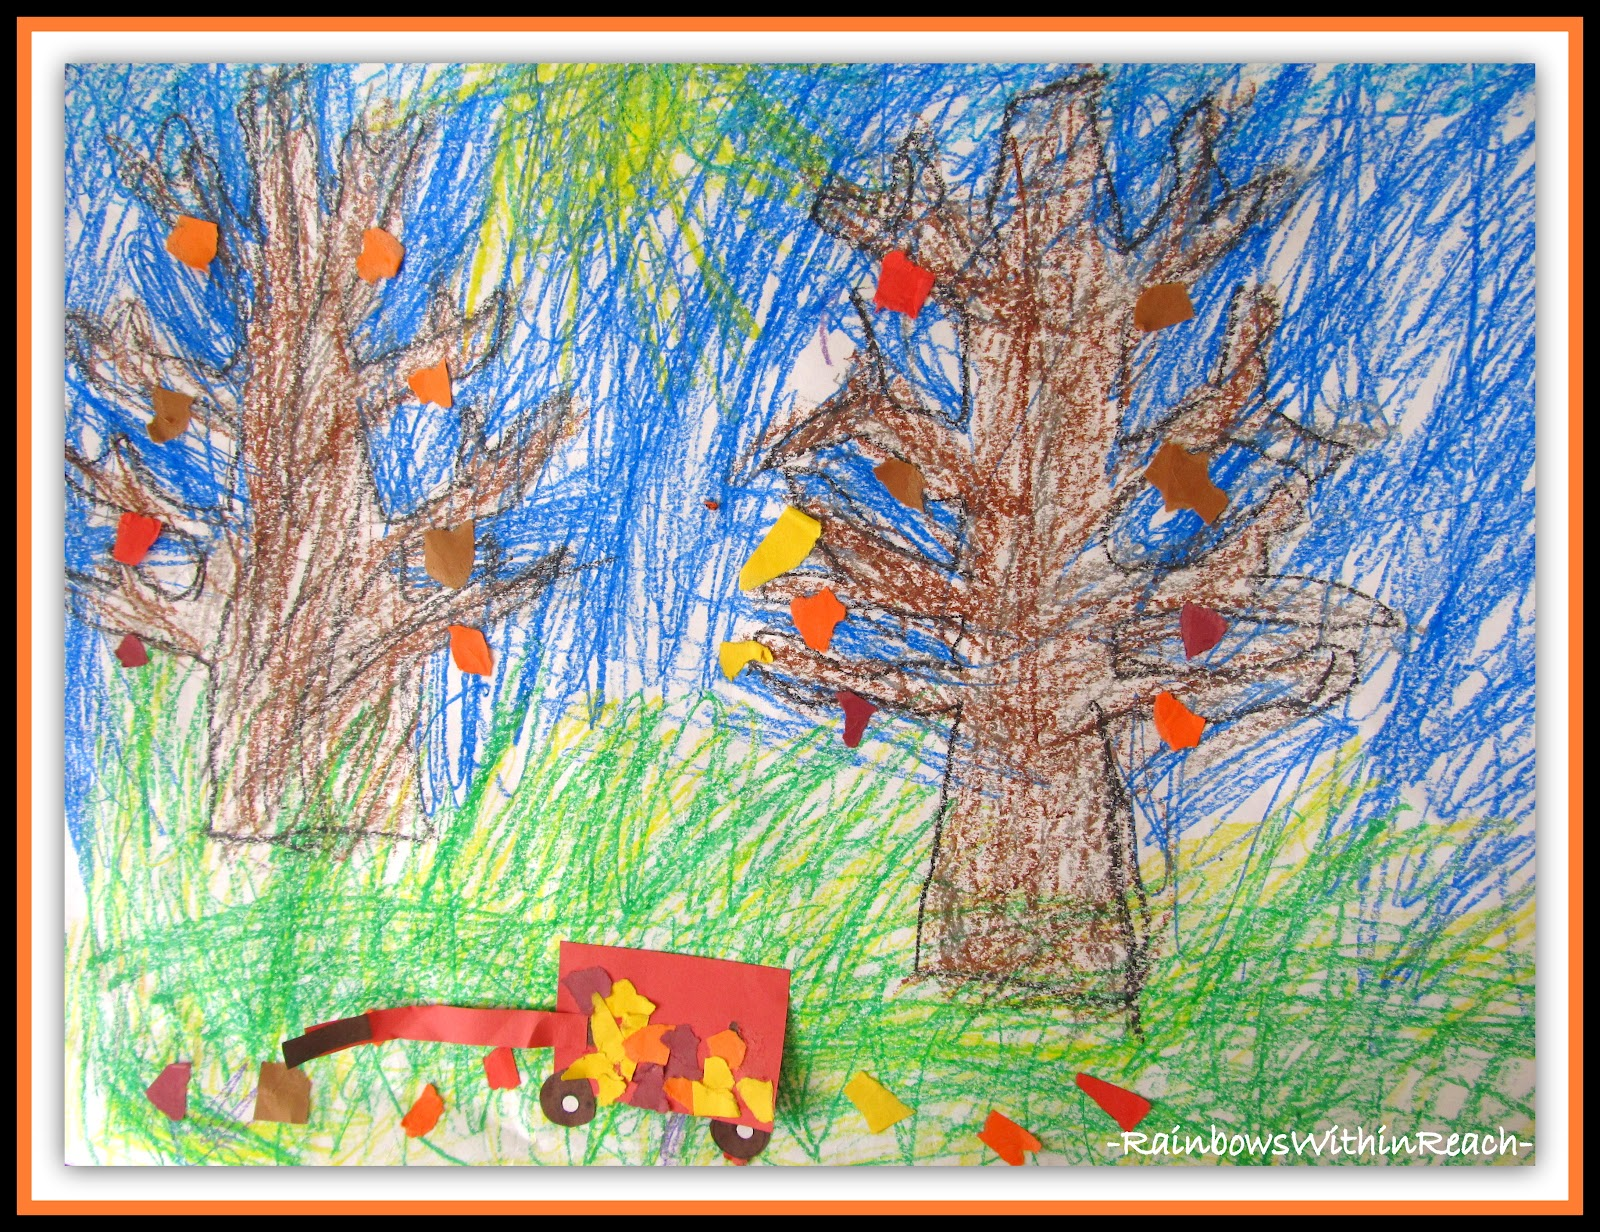 falling leaves essay Falling leaves and bossypants- comparison and contrast falling leaves and bossypants- comparison and contrast essay  in falling leaves adeline uses an approach .